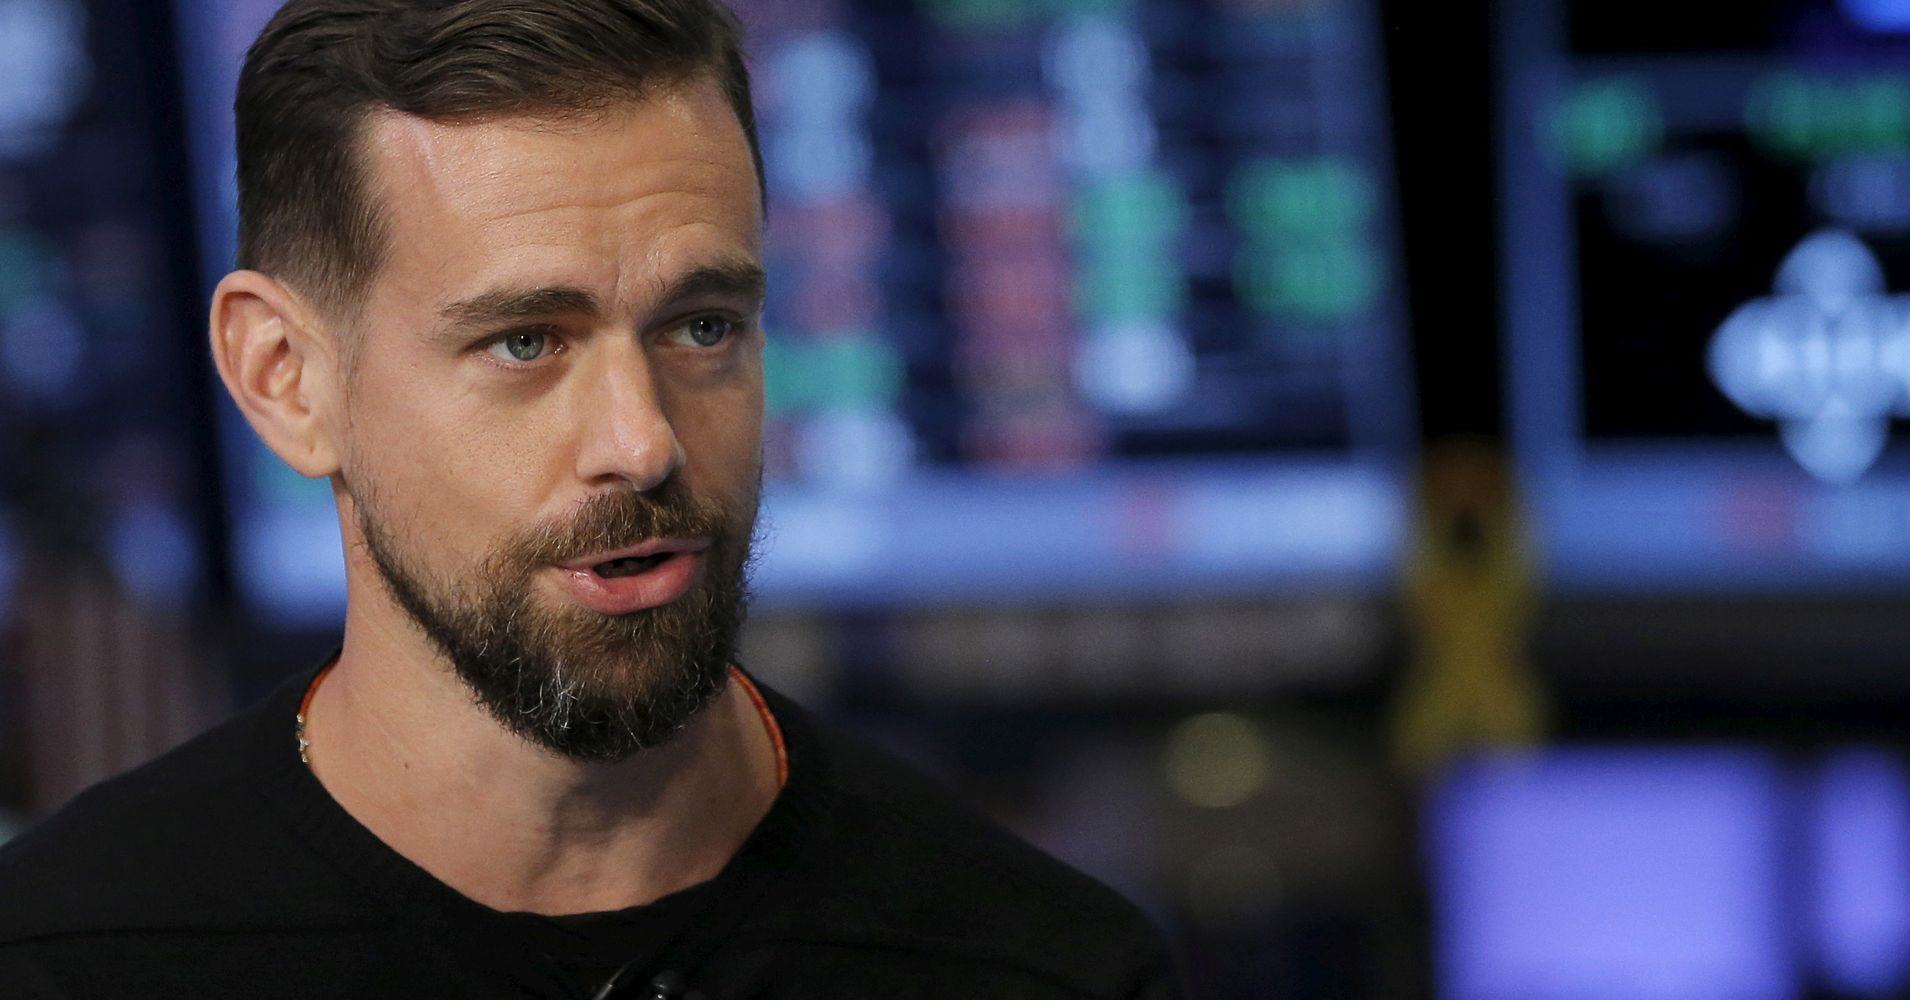 Jack Posts Permanent : Jack dorsey to be named permanent twitter ceo report